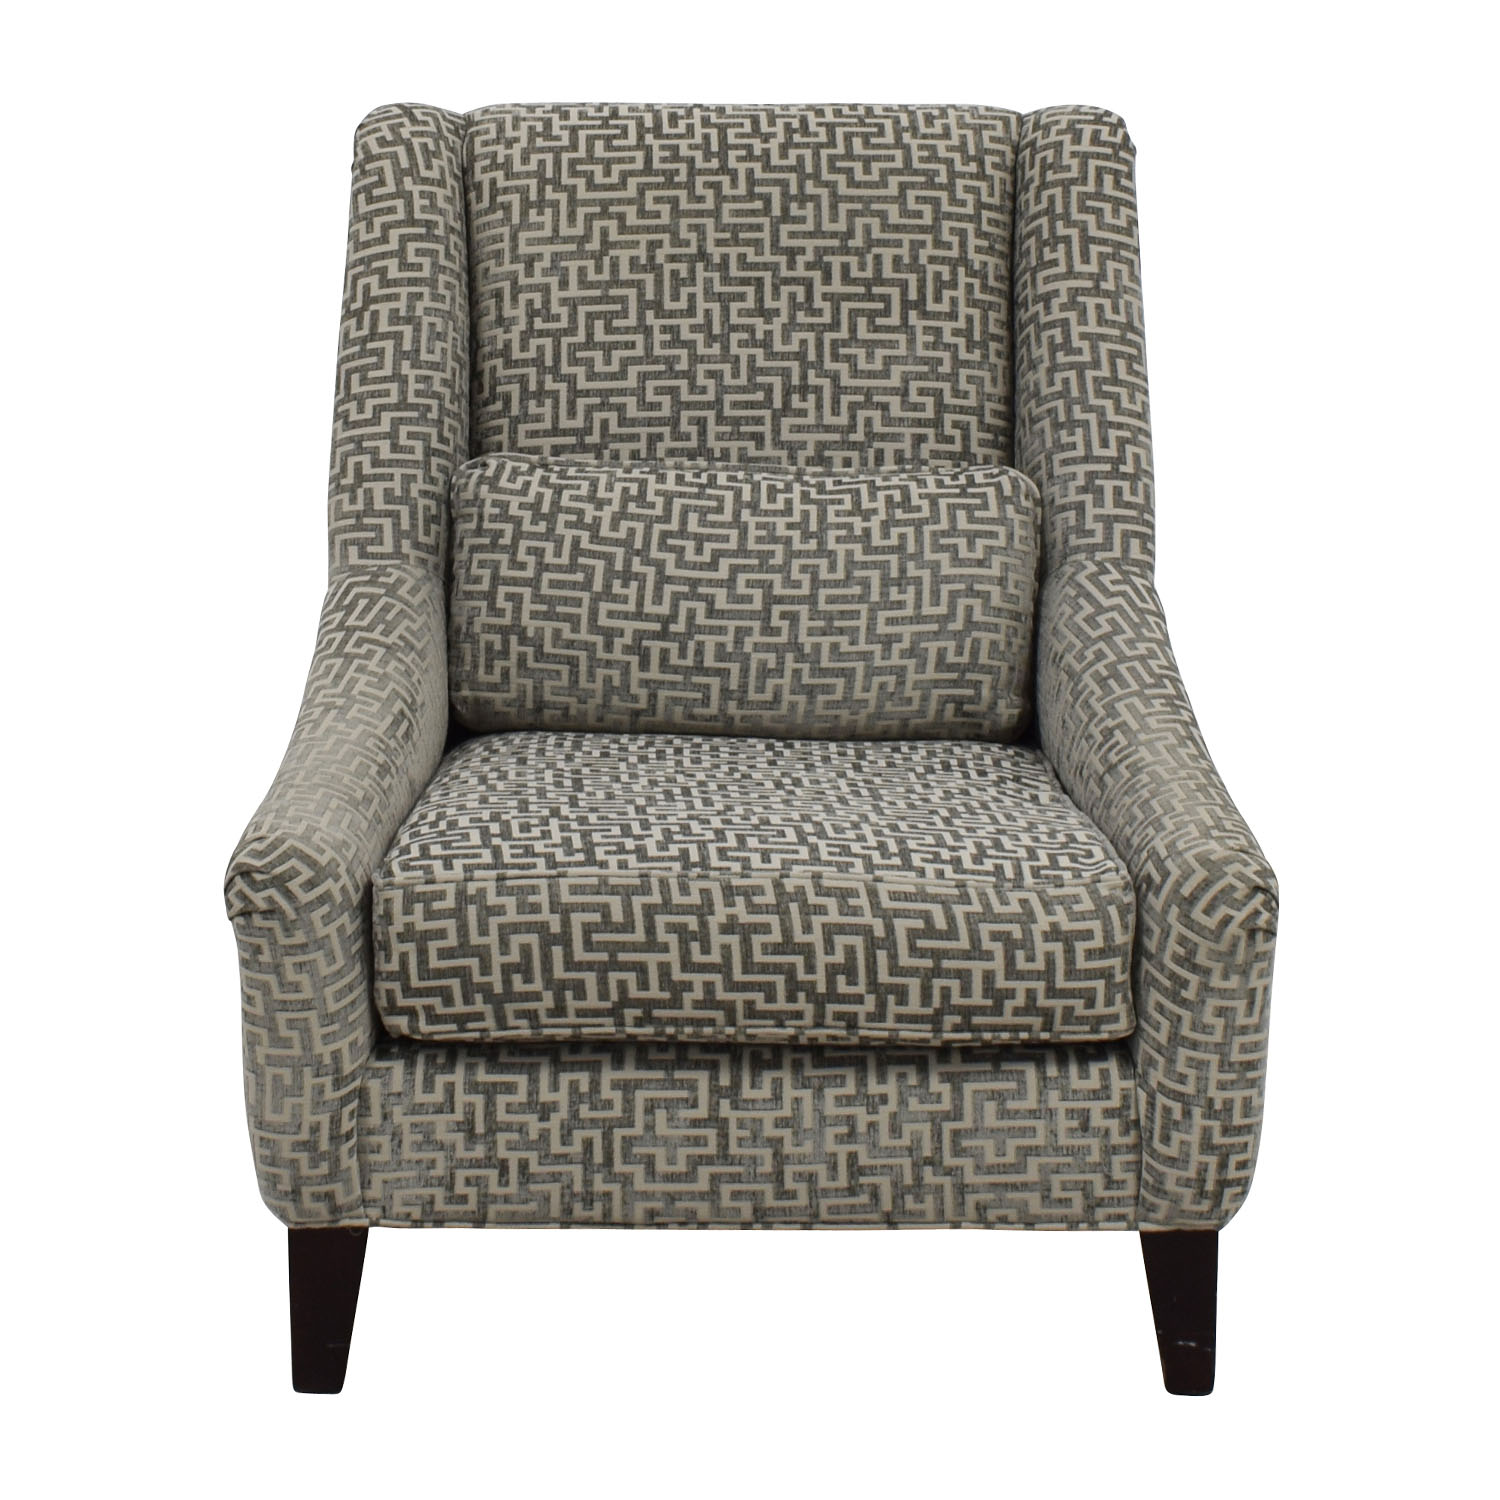 Charmant Shop Mitchell Gold + Bob Williams Marlena Chair Mitchell Gold + Bob  Williams Accent Chairs ...